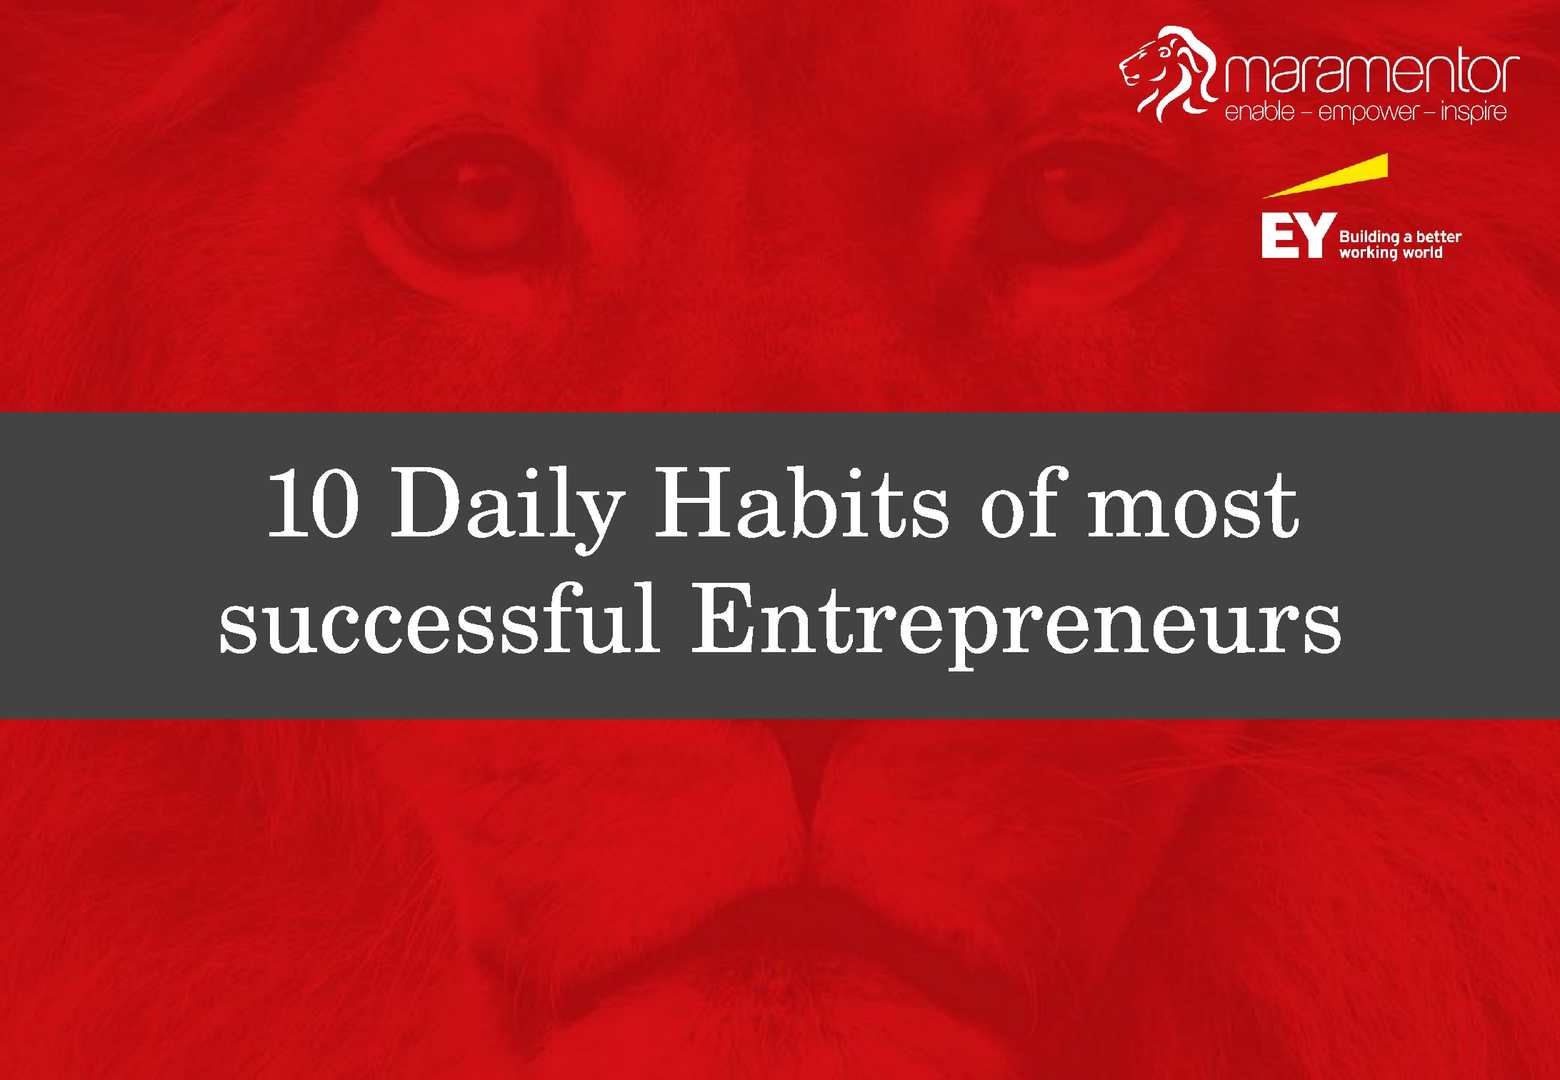 10 Daily Habits of the Most Successful Entrepreneurs